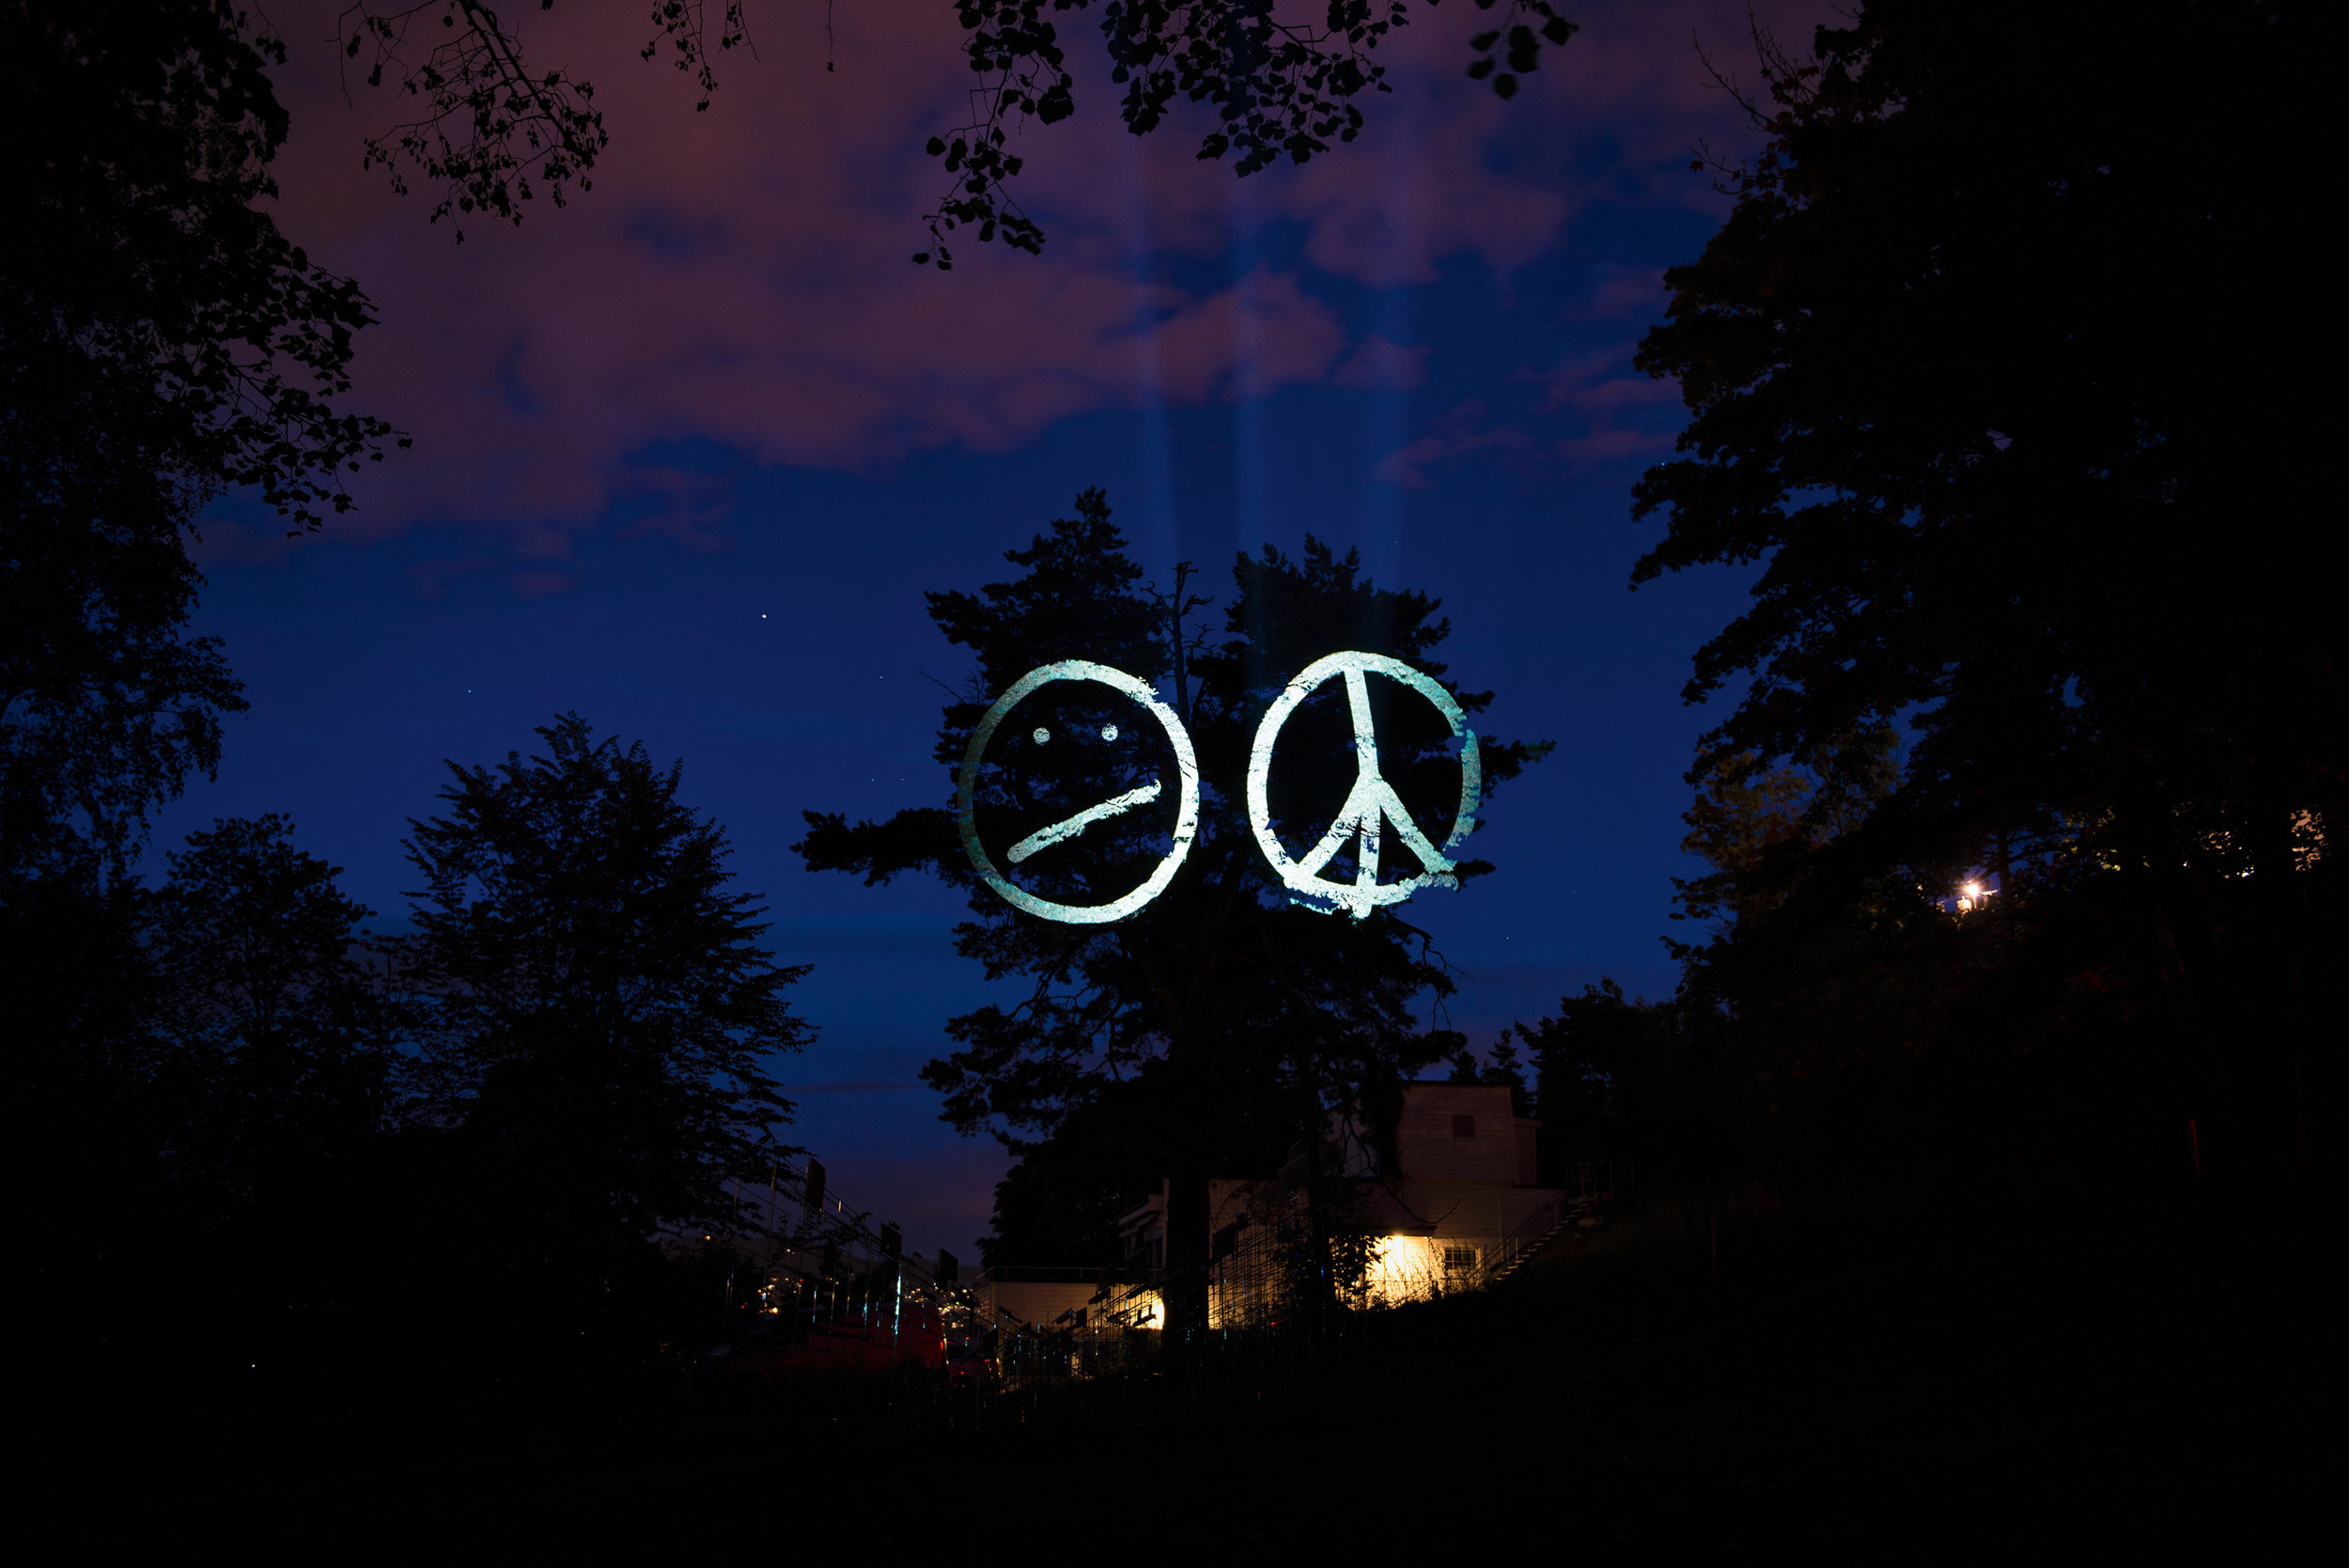 Tony Oursler, Cognitive Dissonance, 2013 Ekeberg parken 2.jpg